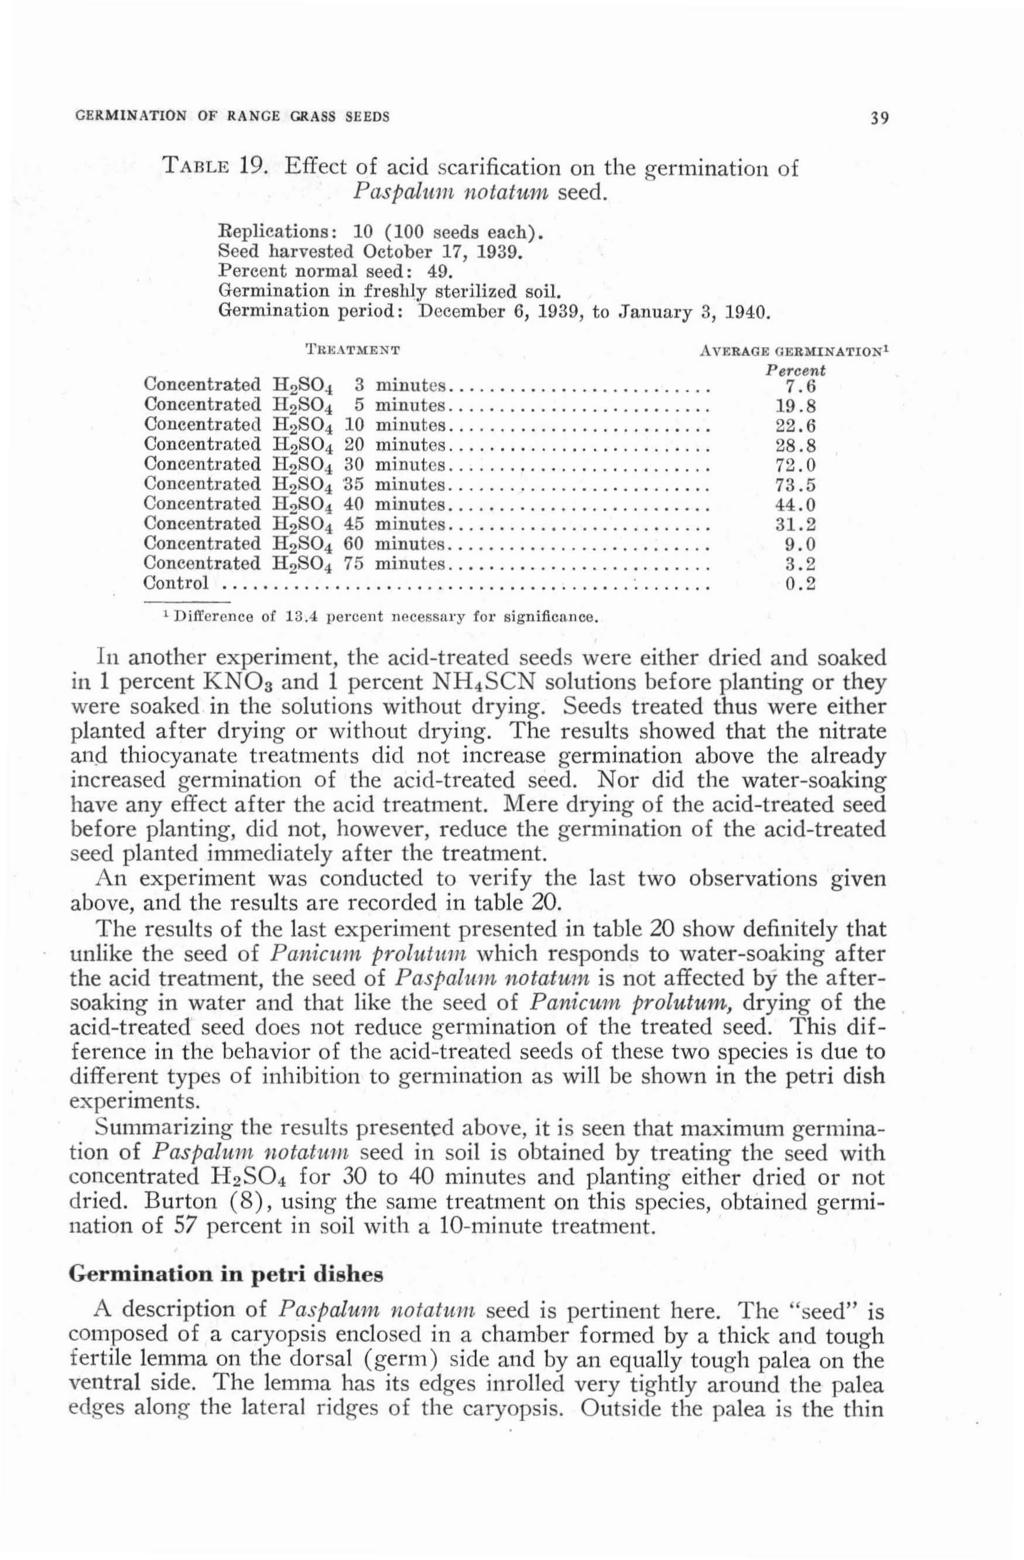 GERM INATI ON OF RAN GE GRASS SEEDS 39 T AB LE 19. Effect of acid scarification on the germination of Pas paluni uotatuni seed. Repli cations: 10 (100 seeds each). Seed ha rvest ed October 17, 1939.